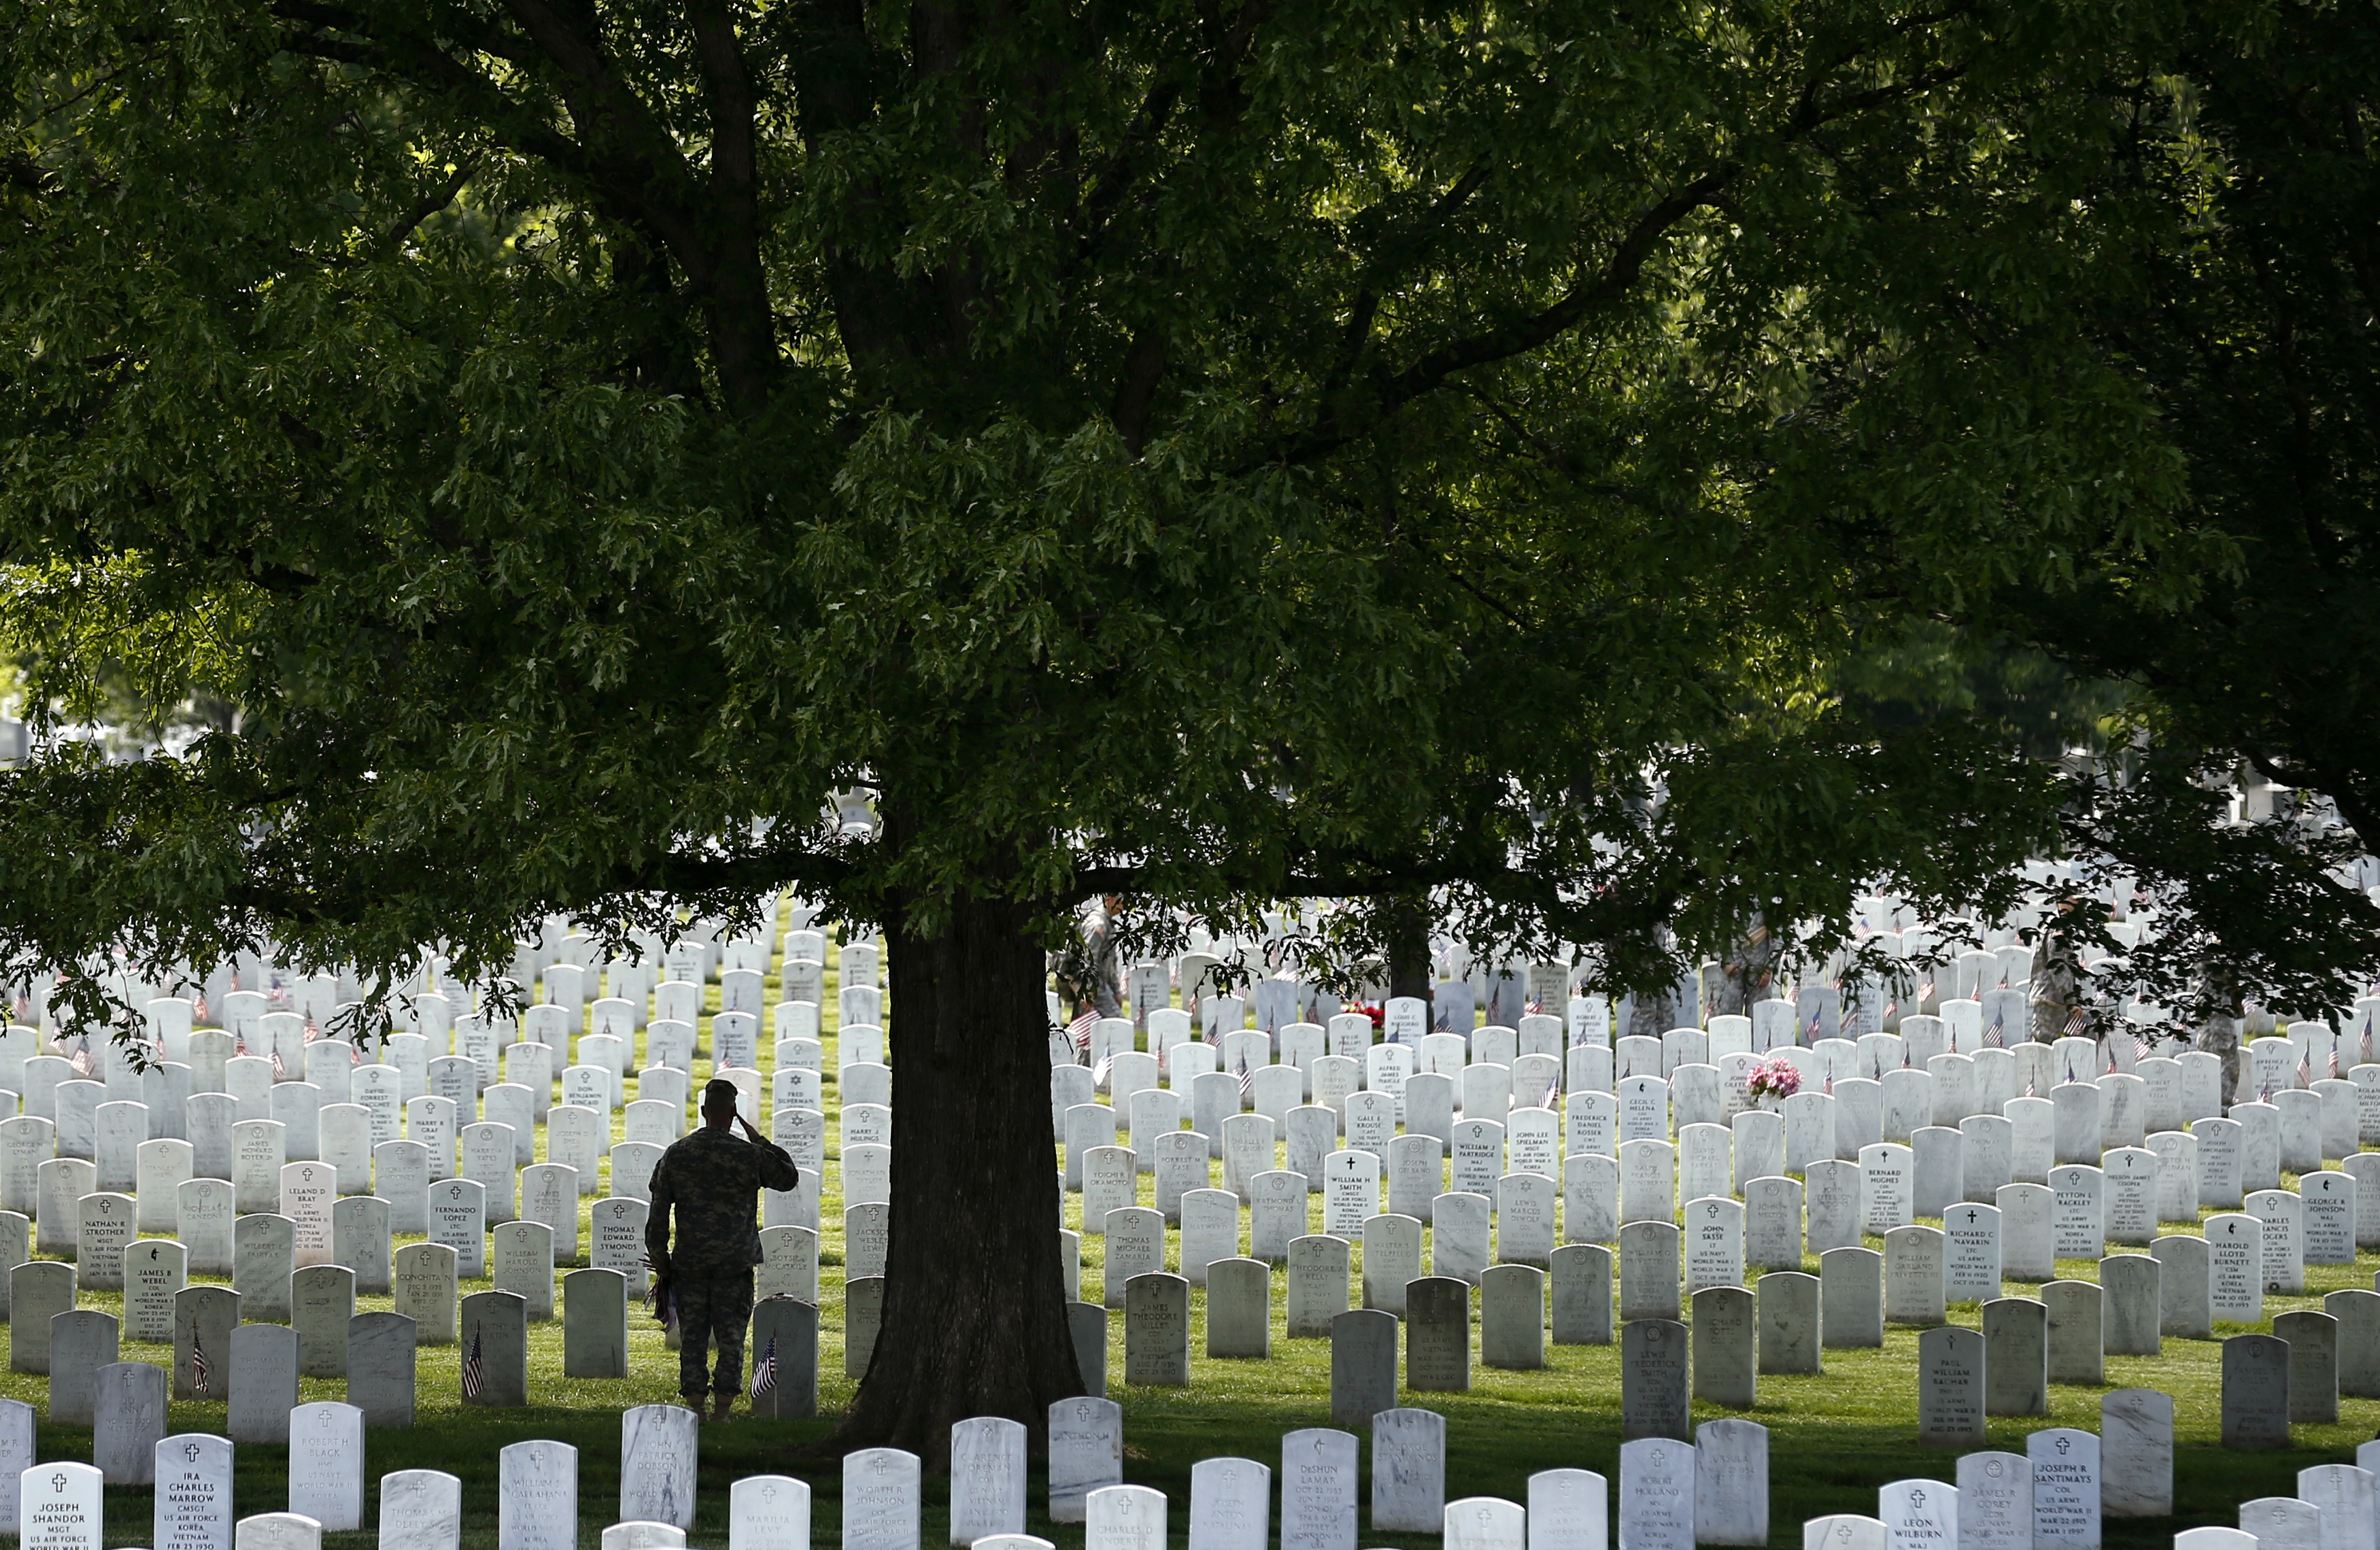 A member of the 3rd U.S. Infantry Regiment,  The Old Guard  salutes in front of a grave during a  Flags-In  ceremony at Arlington National Cemetery in Va., May 22, 2014.